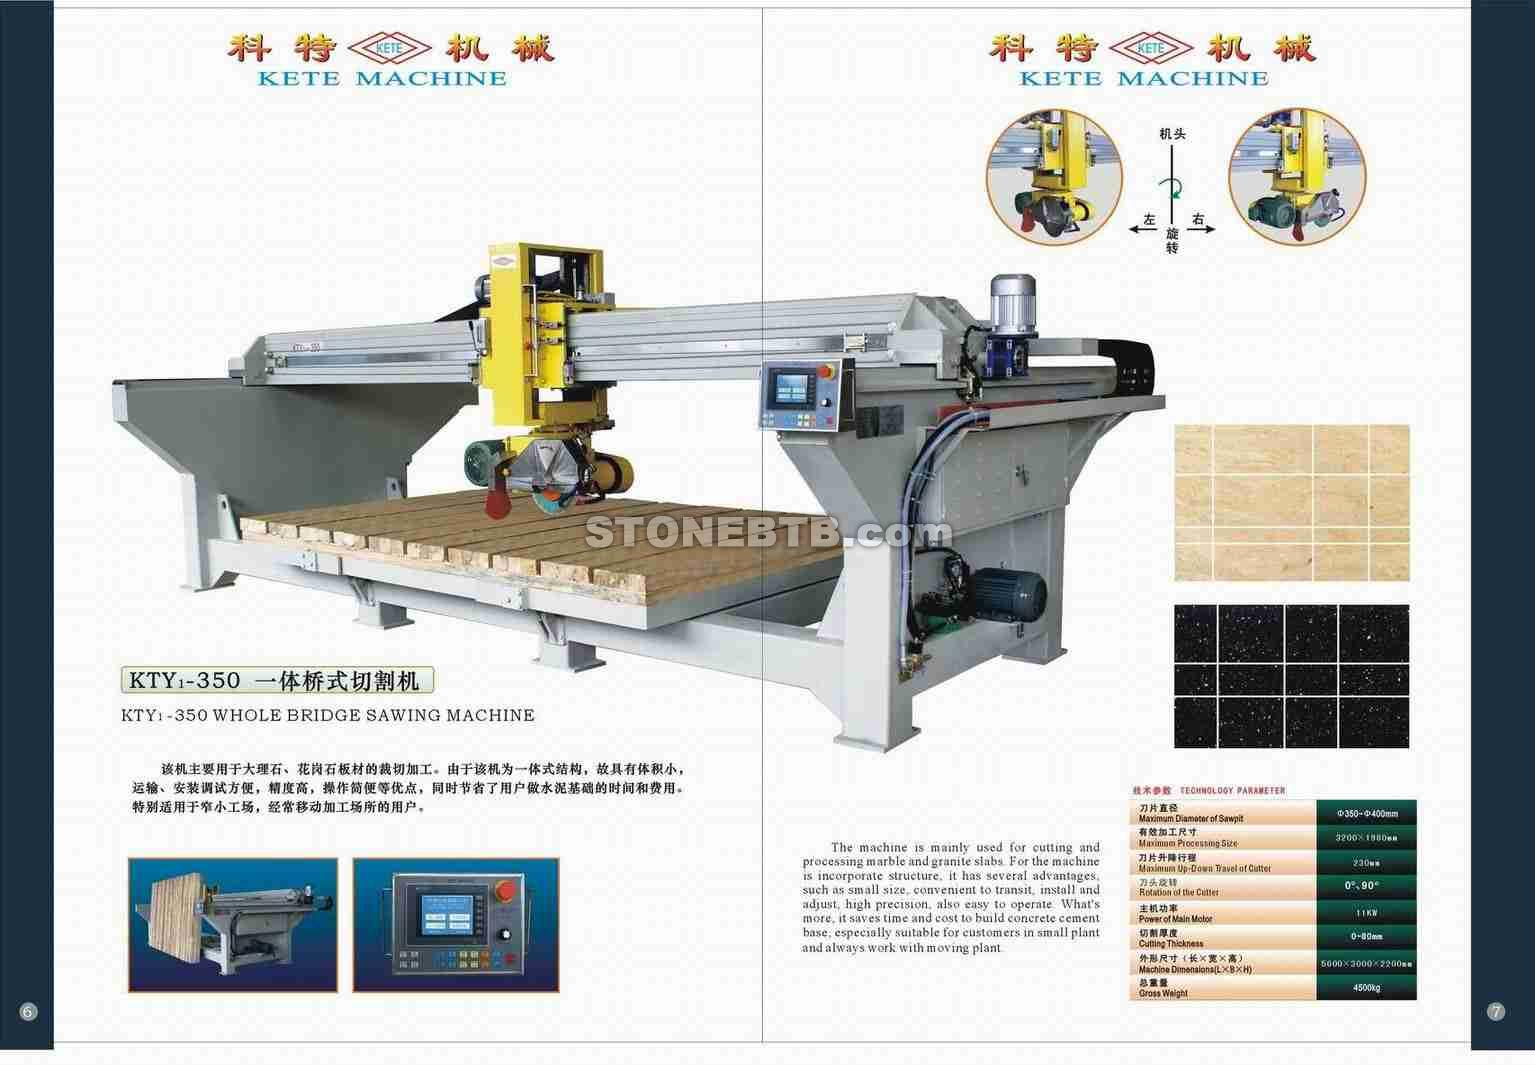 KTY1 350H WHOLE BRADGE AUTOMATIC SAWING MACHINE